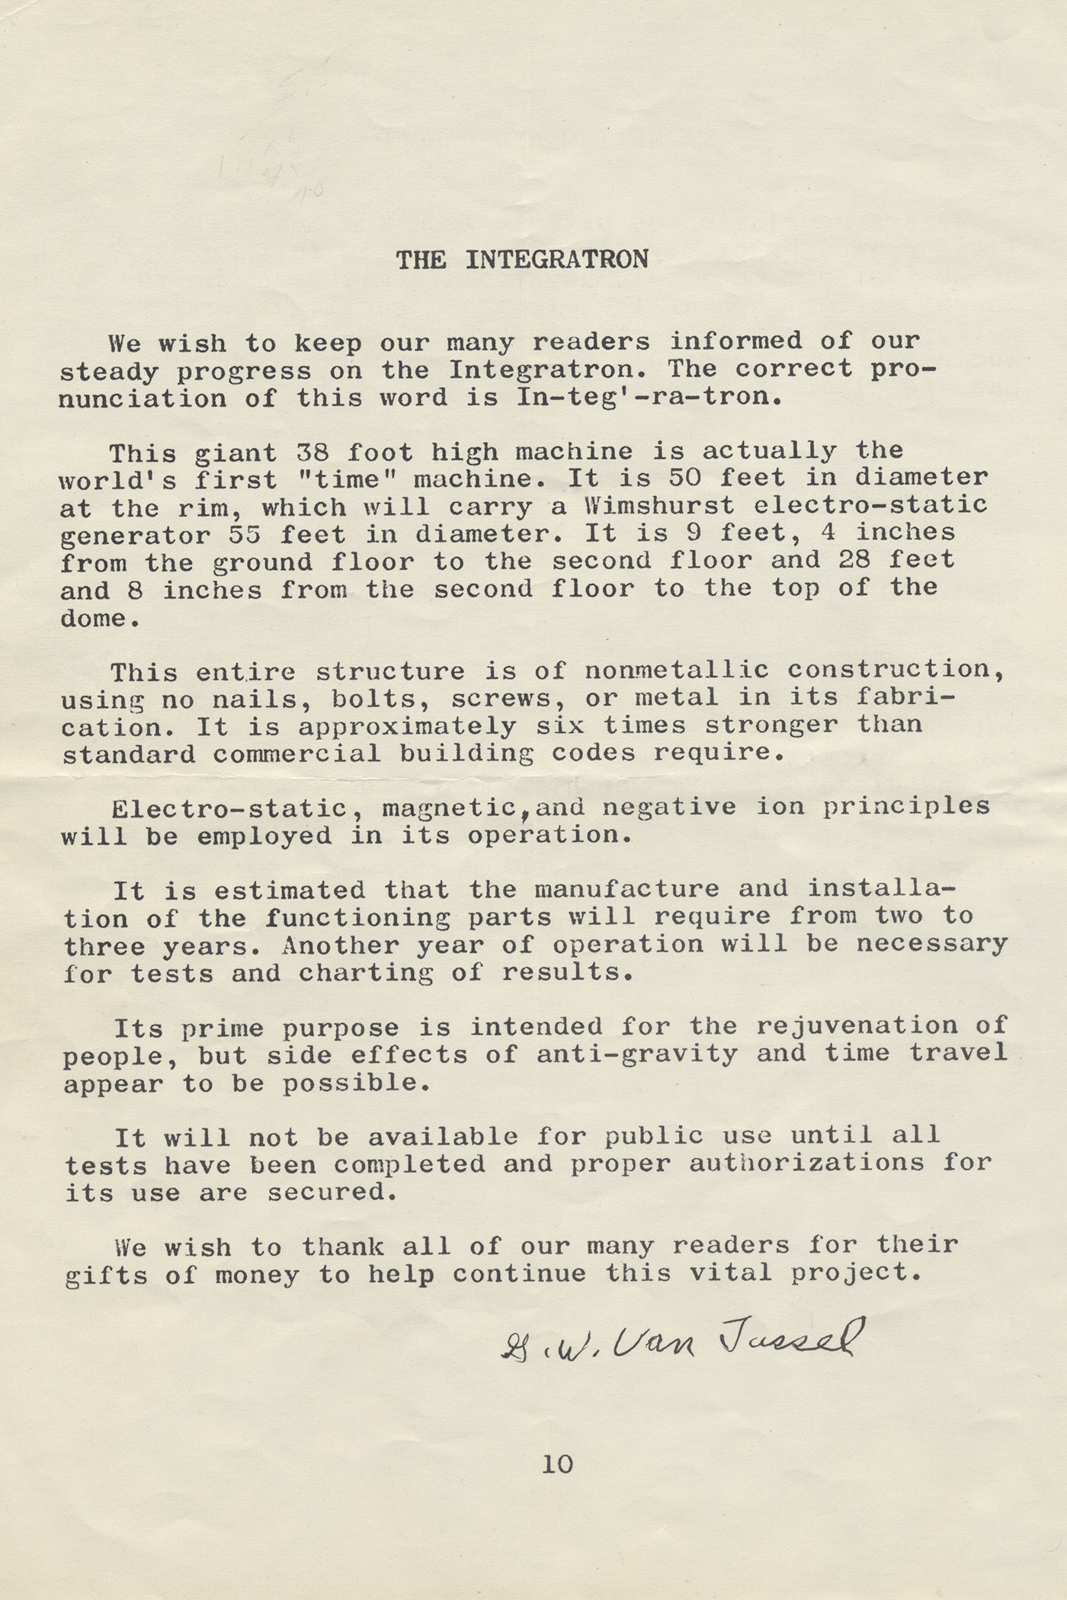 Proceedings Vol. 7 No. 2, pg. 10, 1961